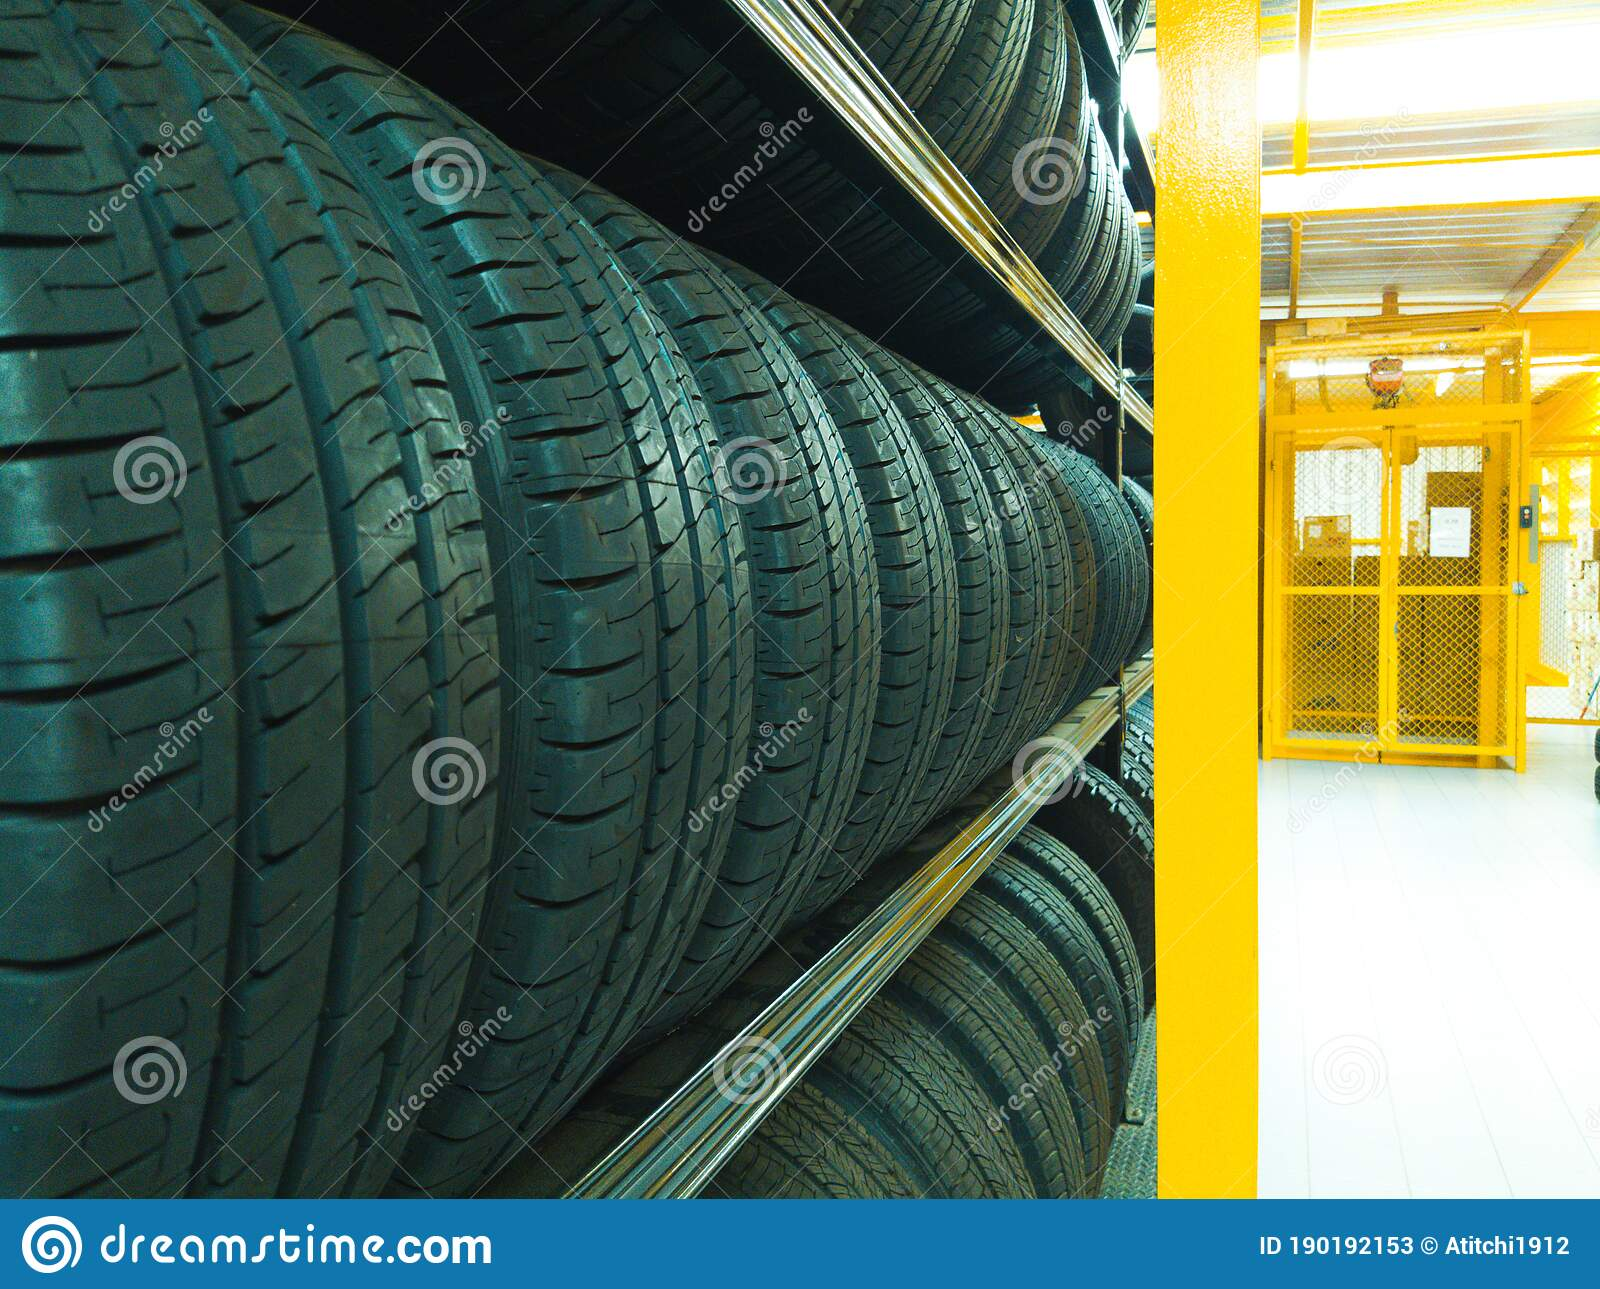 many new car tires are lined up on a tire rack stock image image of closeup transportation 190192153